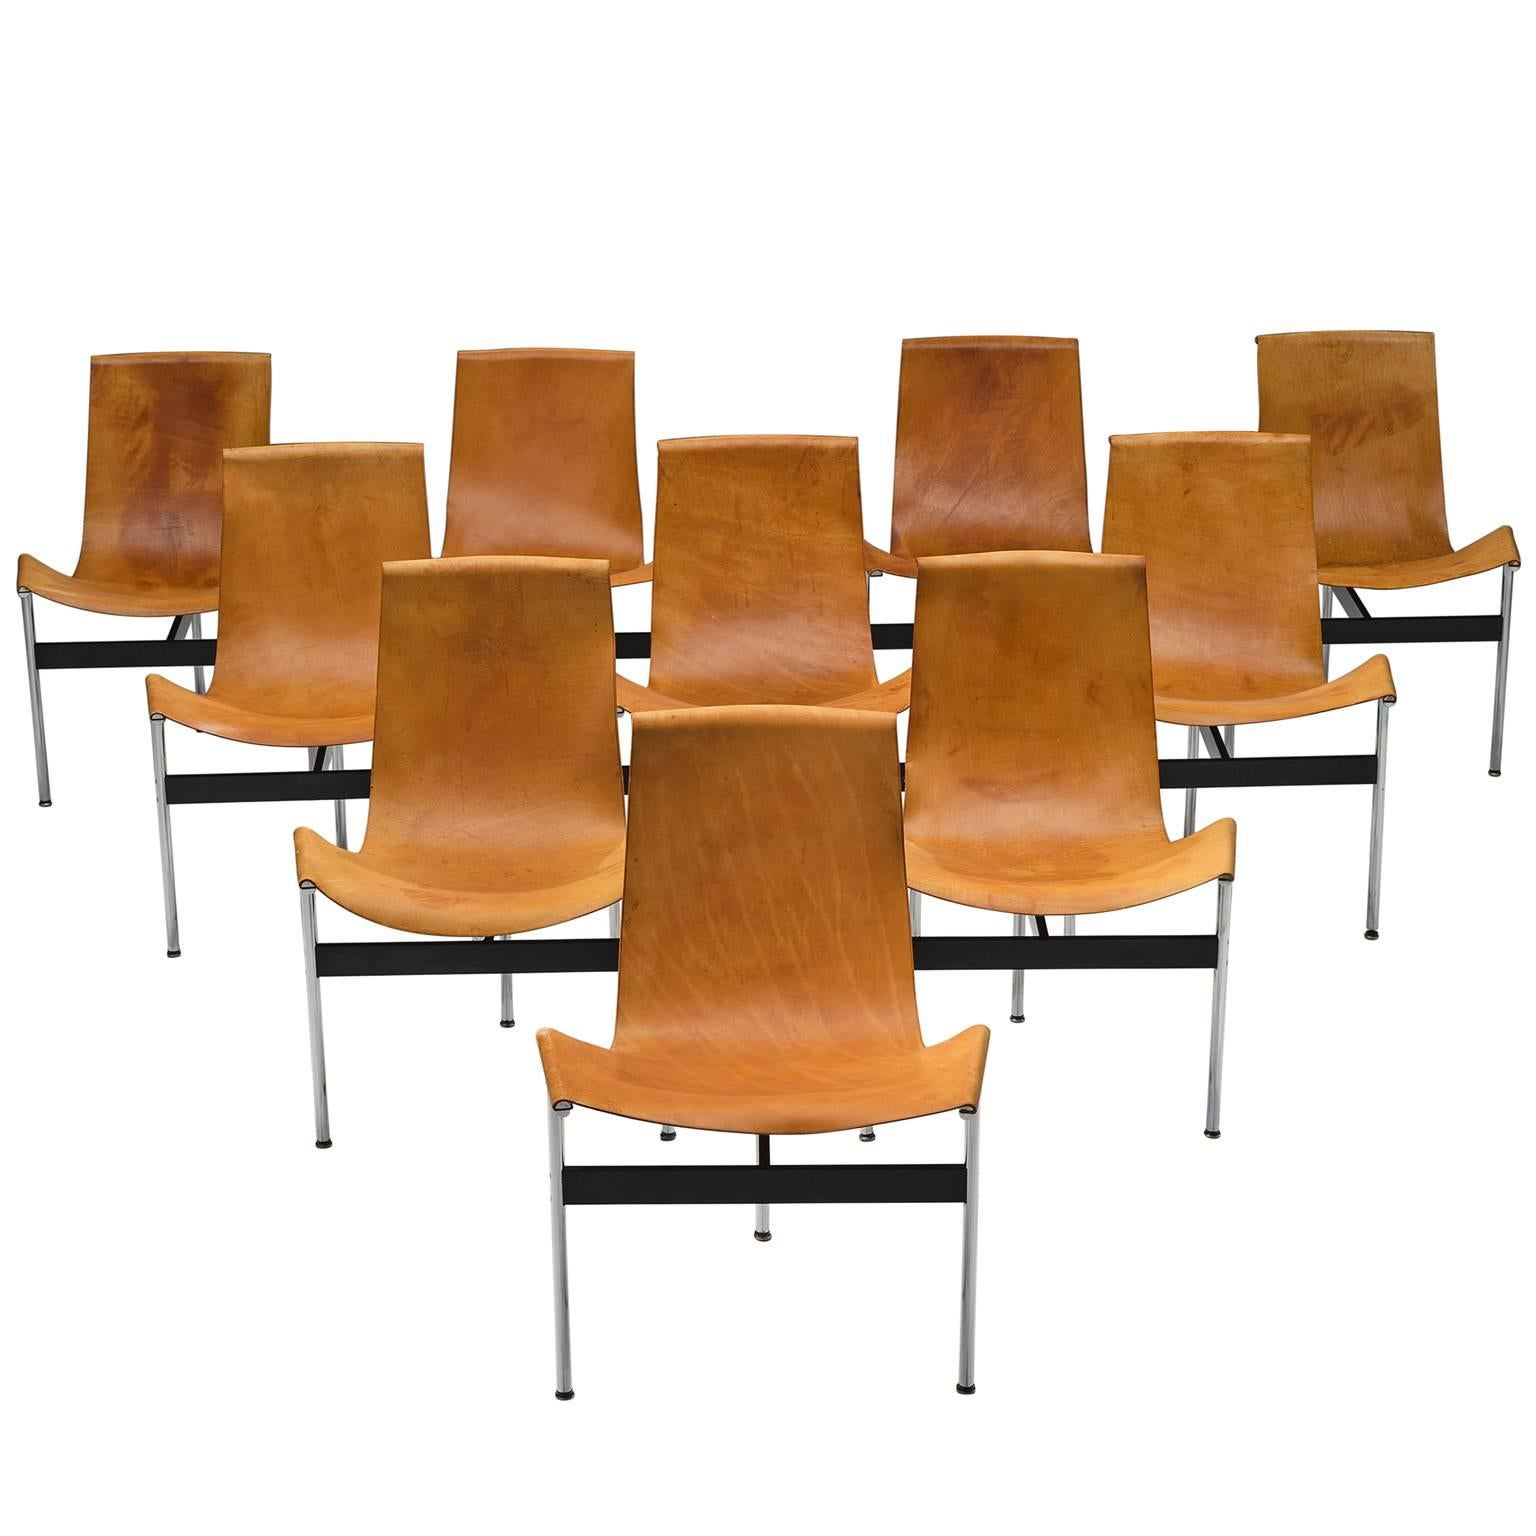 Katavolos, Kelley And Littell T Chairs In Cognac Leather, Set Of Ten